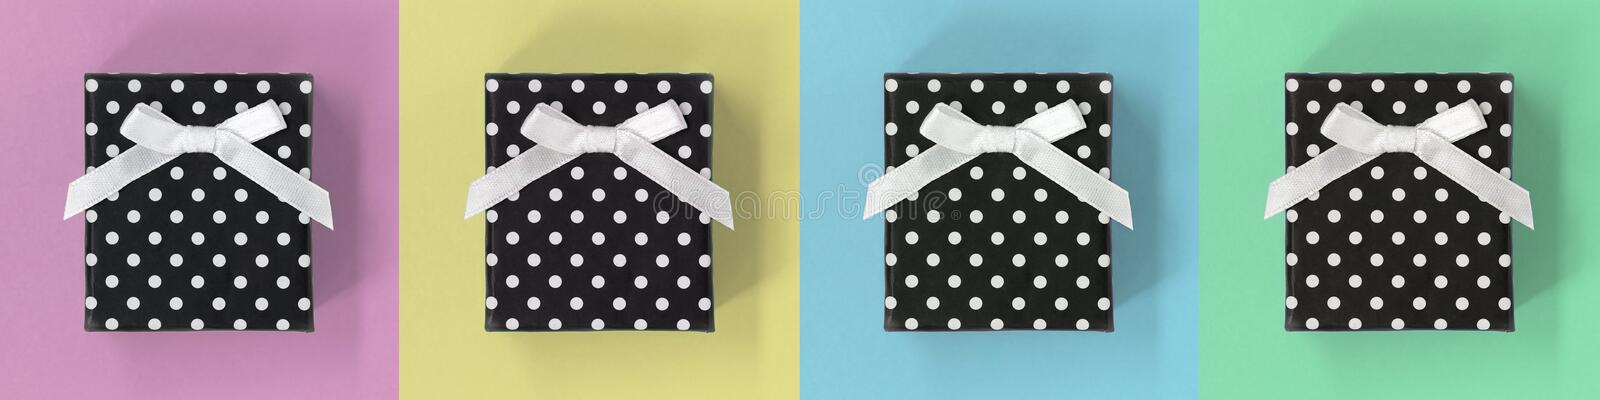 Gift boxes banner, on pastel multicoloured squares. Four black gift boxes with polka dots and bows, on a pastel multicoloured banner, with square backgrounds royalty free stock photos